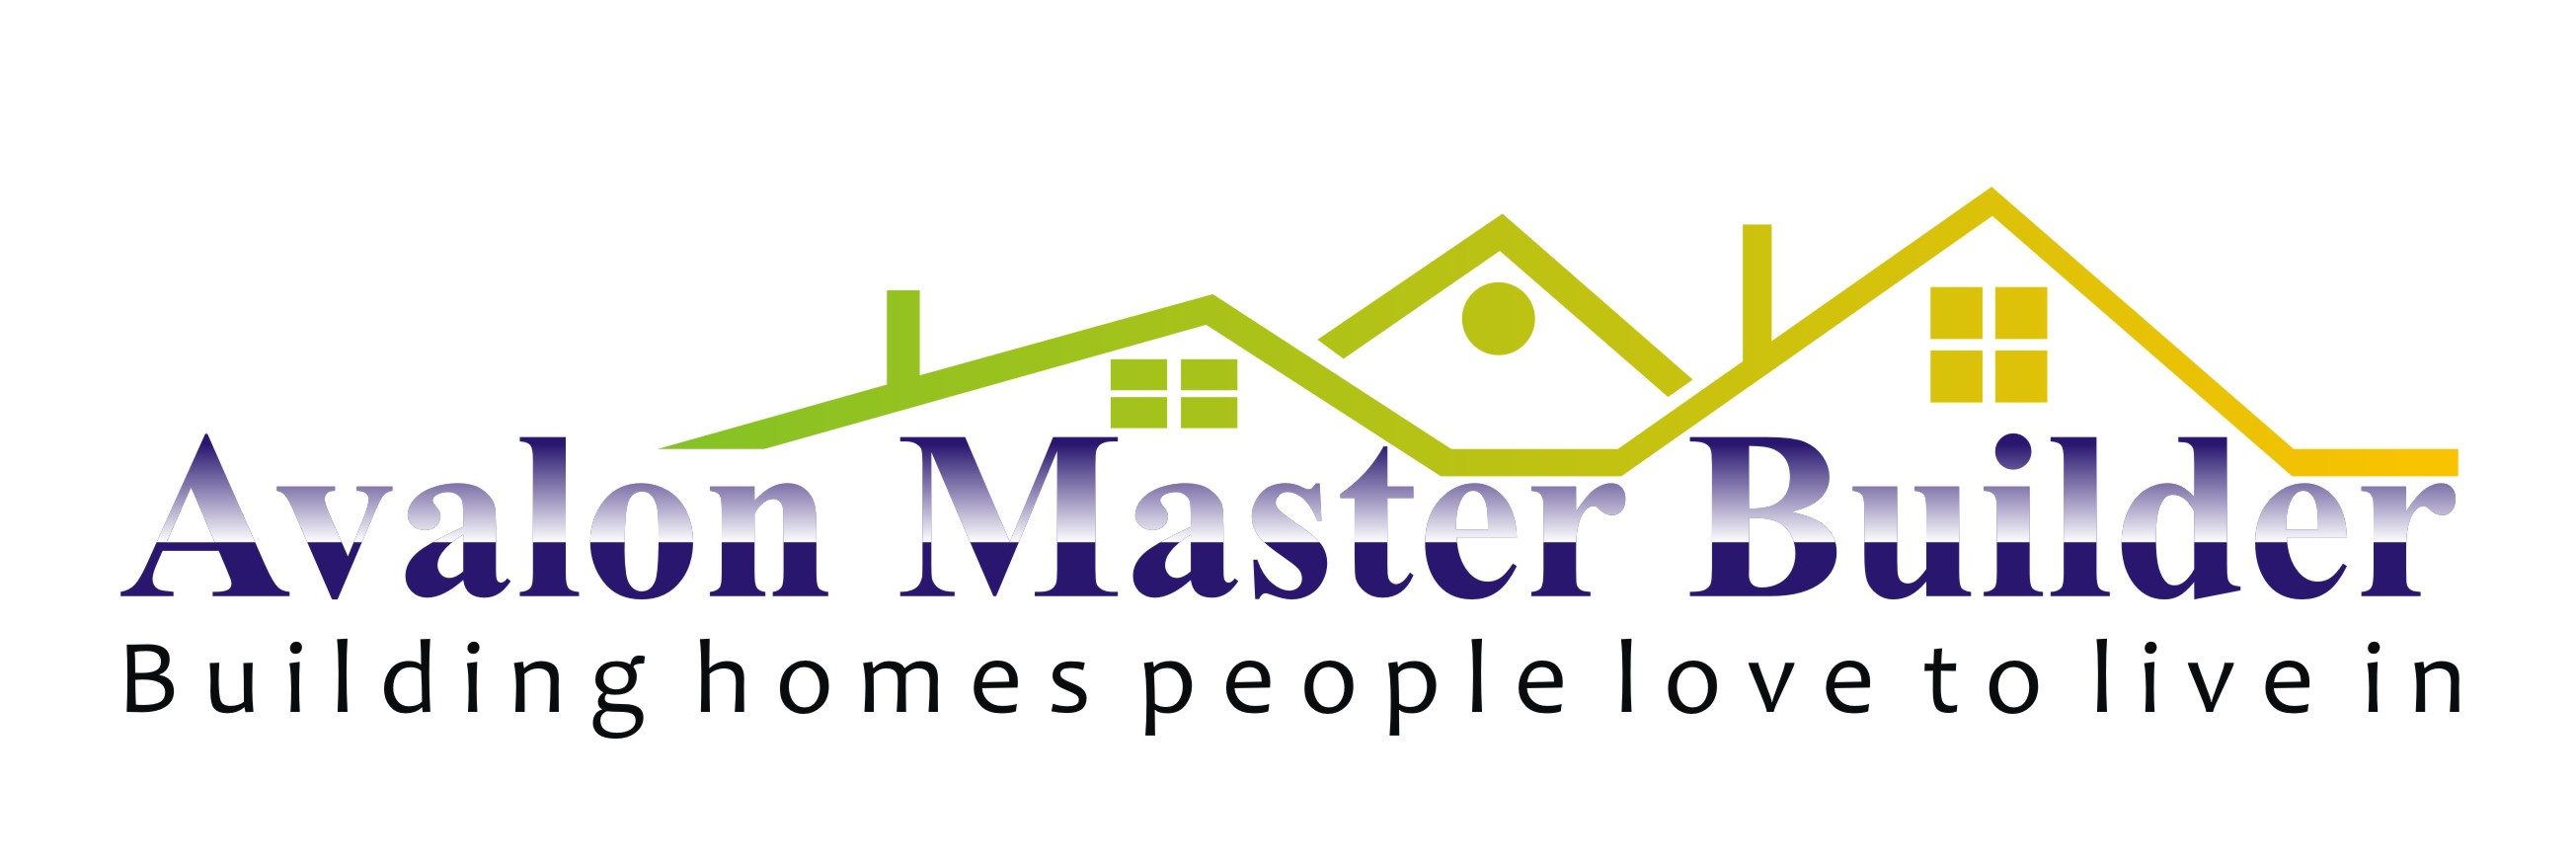 Logo Design by Private User - Entry No. 11 in the Logo Design Contest Avalon Master Builder Logo Design.